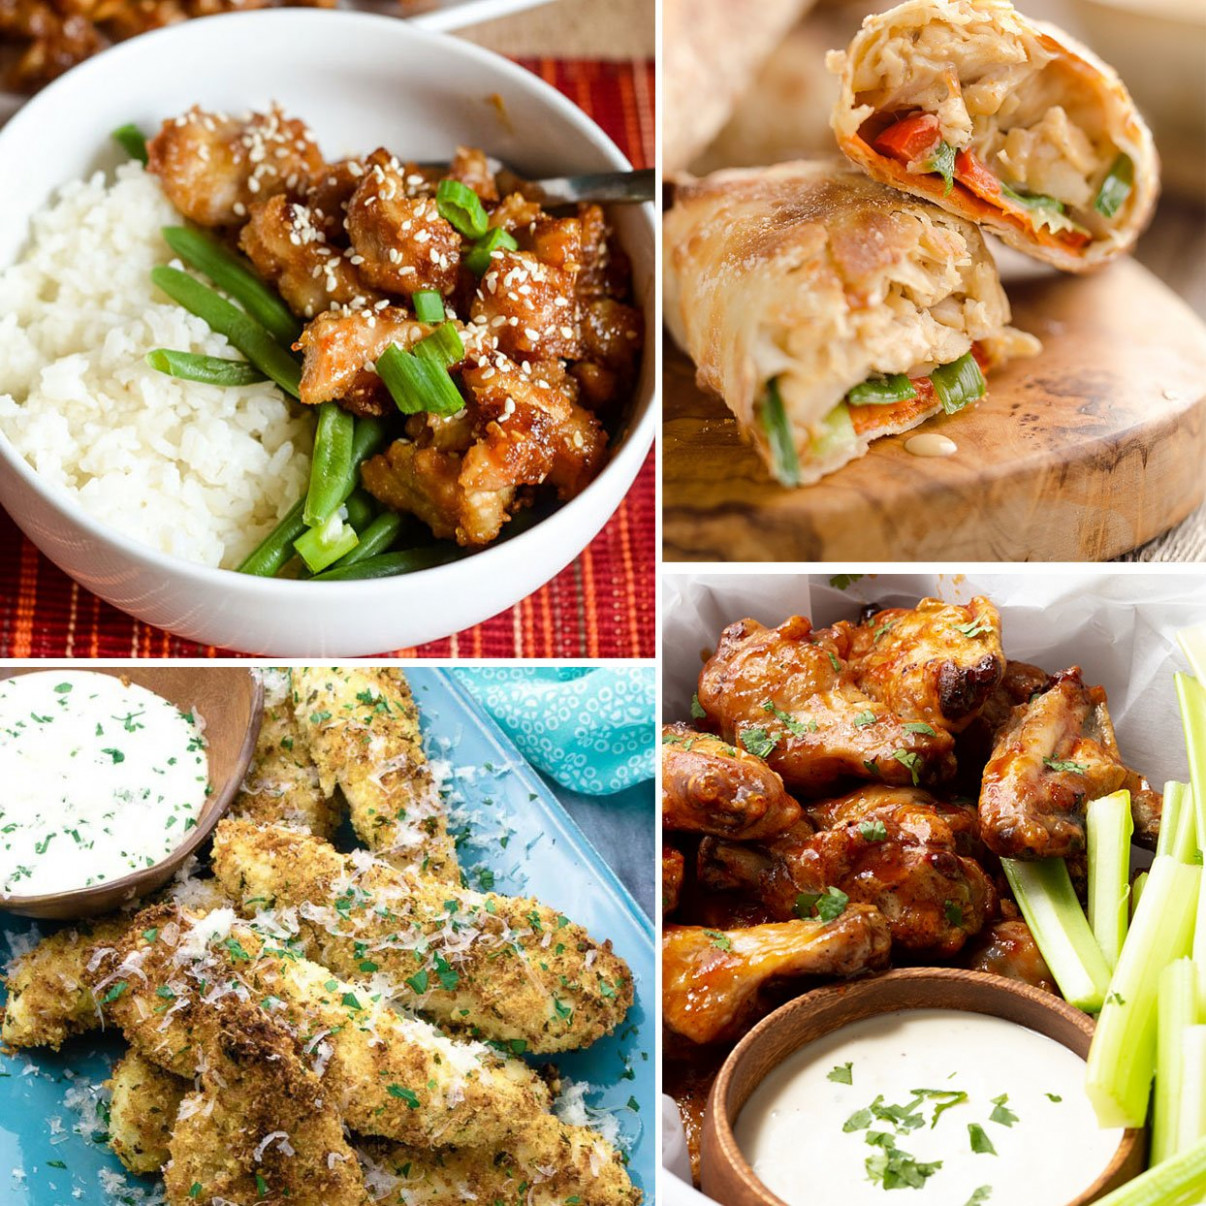 Healthy Air Fryer Chicken Recipes | Shape - recipes air fryer chicken wings